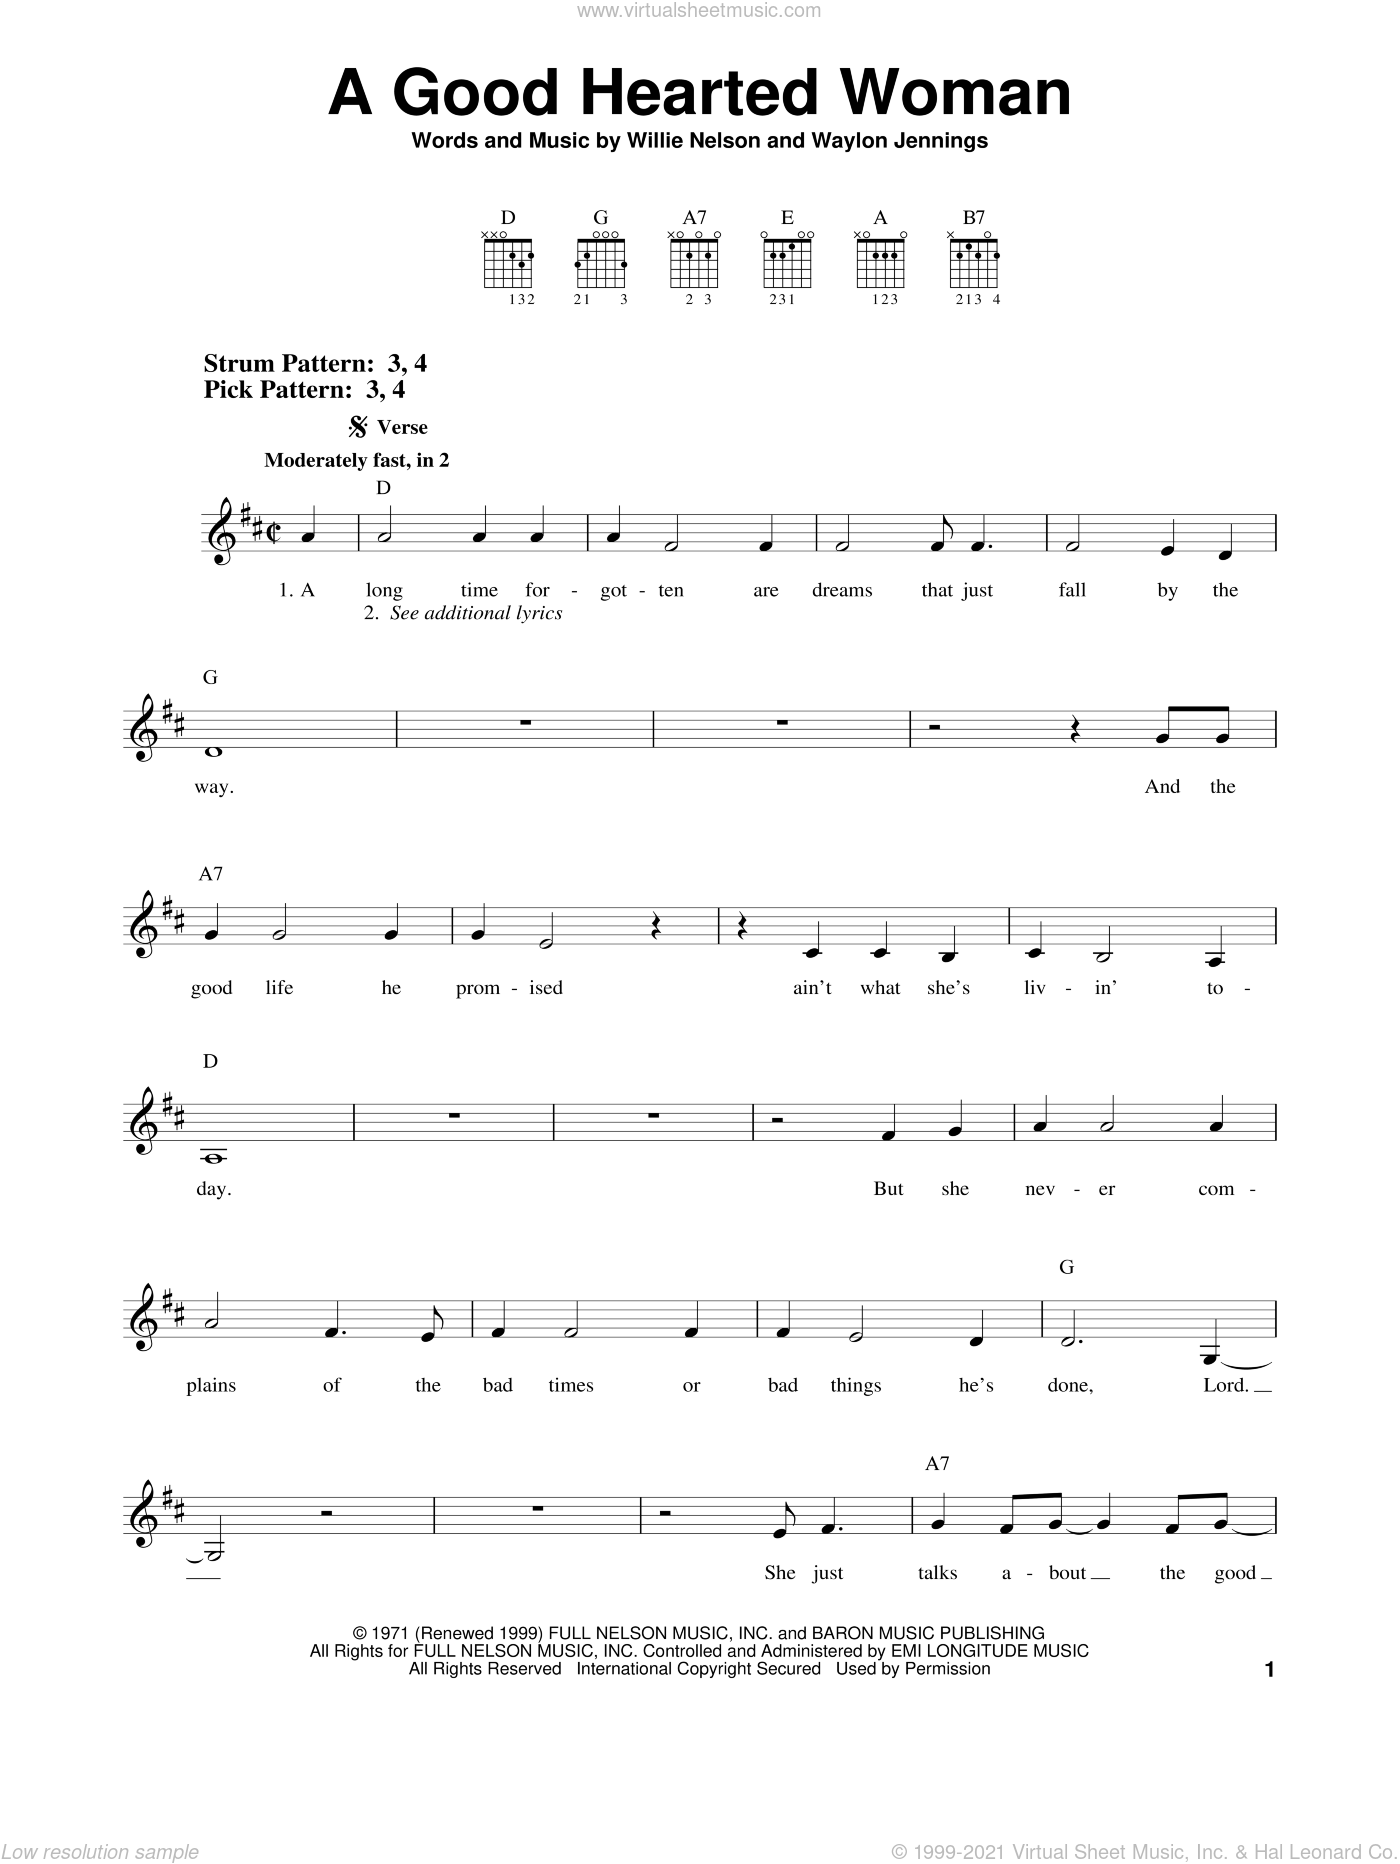 A Good Hearted Woman sheet music for guitar solo (chords) by Waylon Jennings